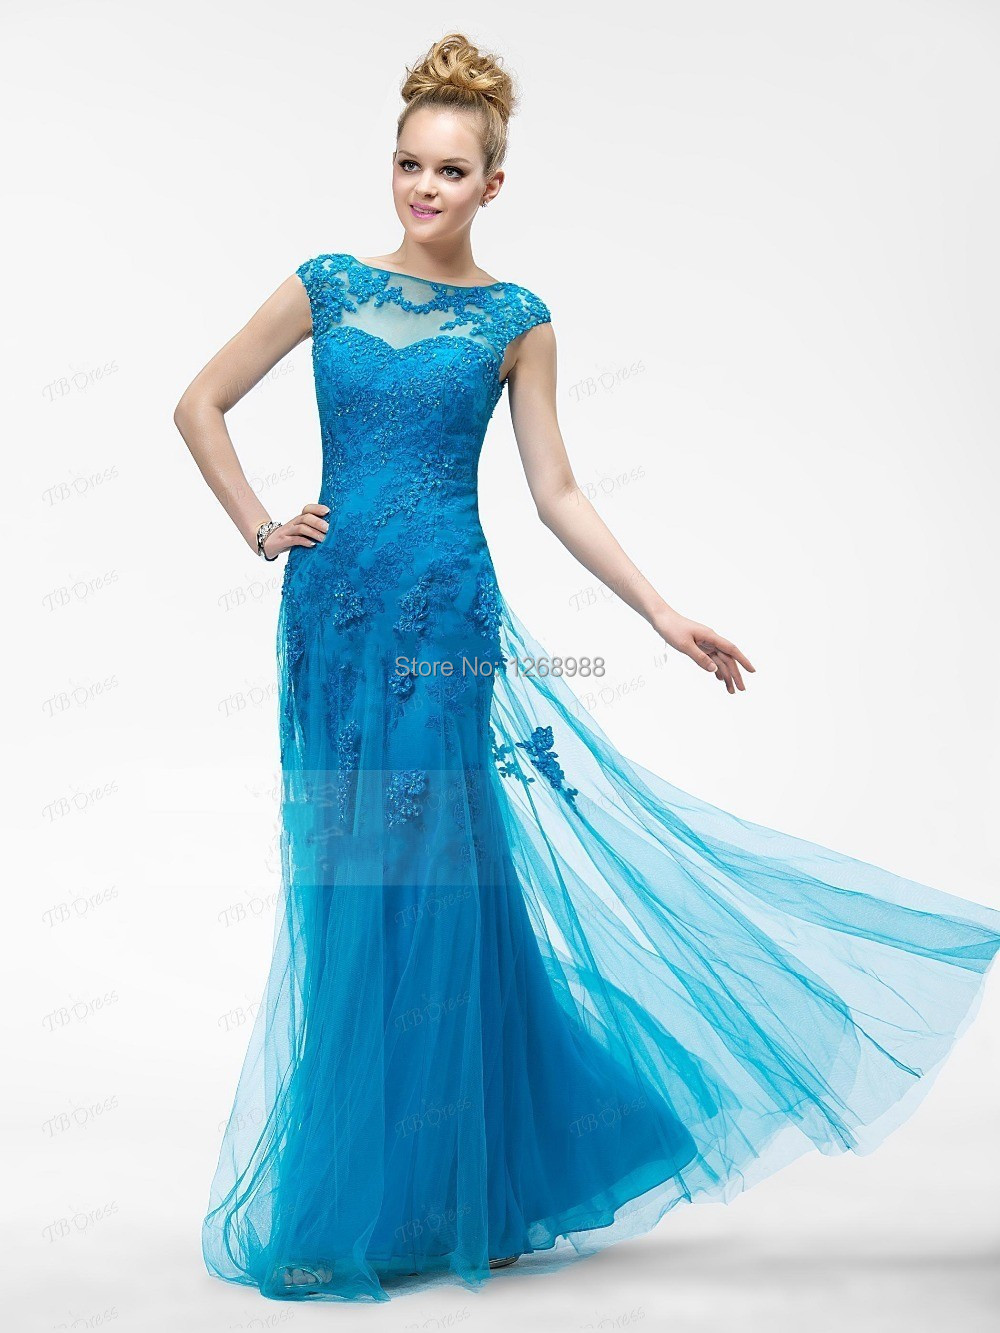 Cheap Vogue Mermaid, find Vogue Mermaid deals on line at Alibaba.com